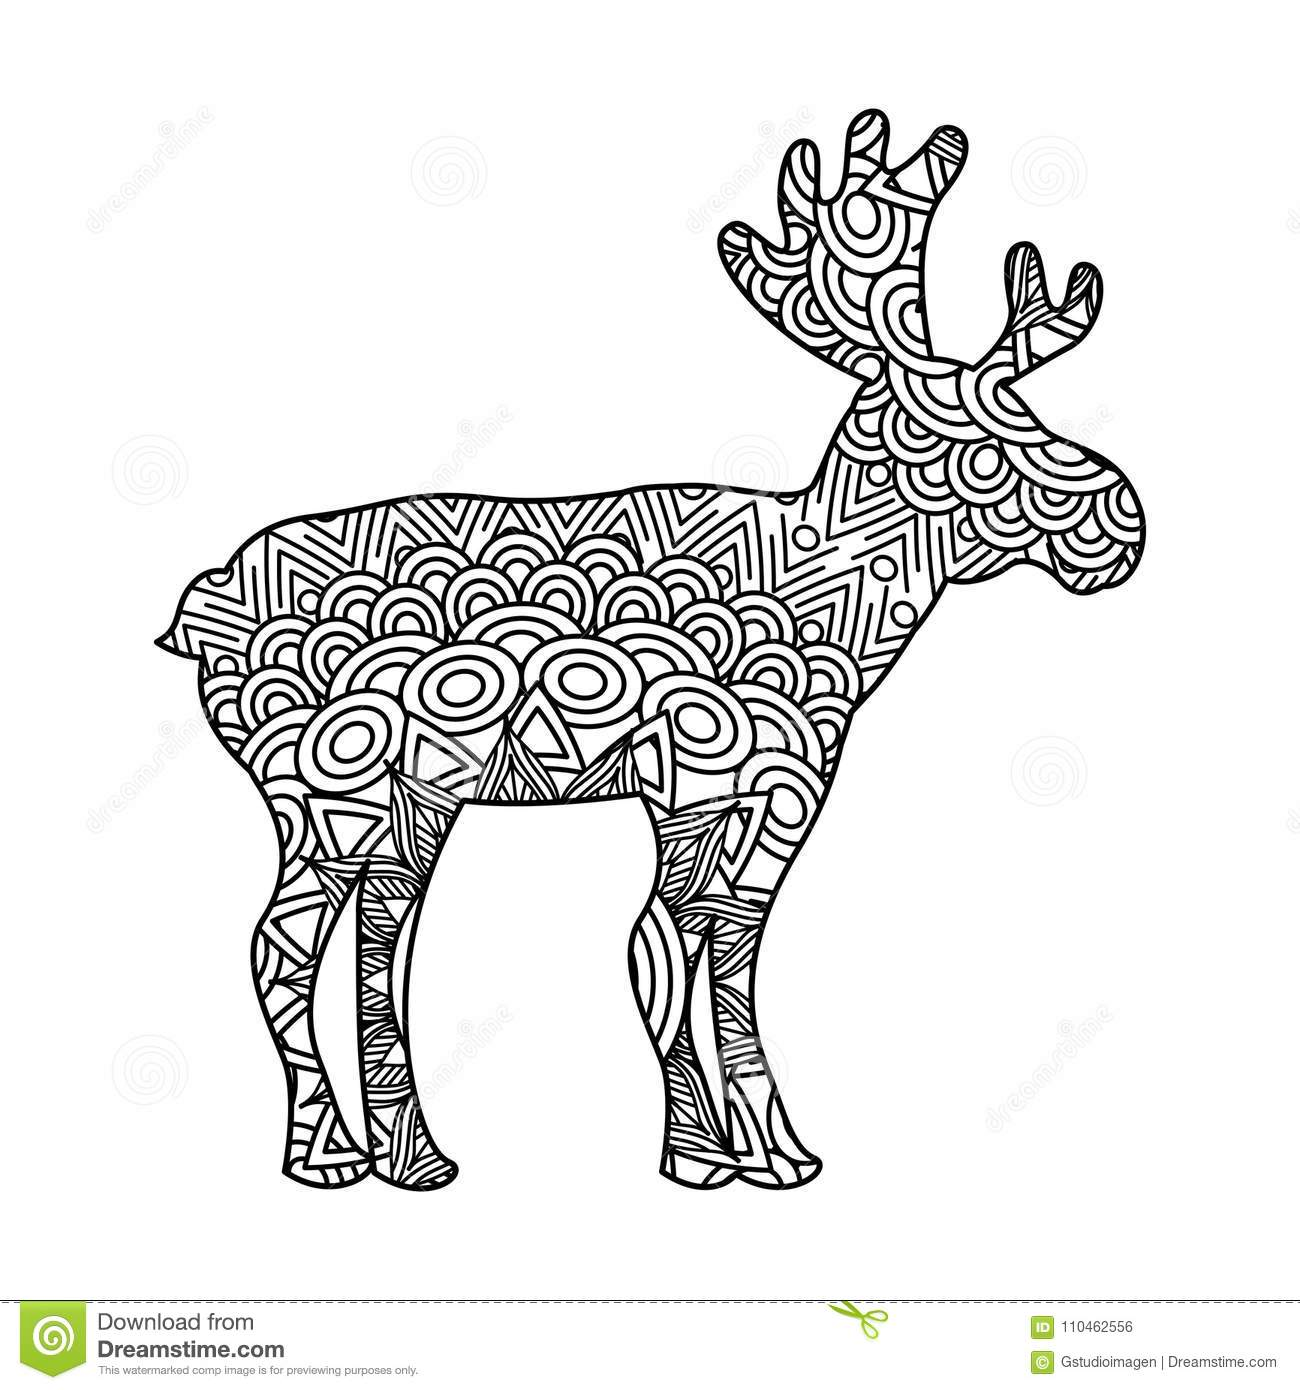 Drawing Zentangle For Deer Adult Coloring Page Stock Vector ...